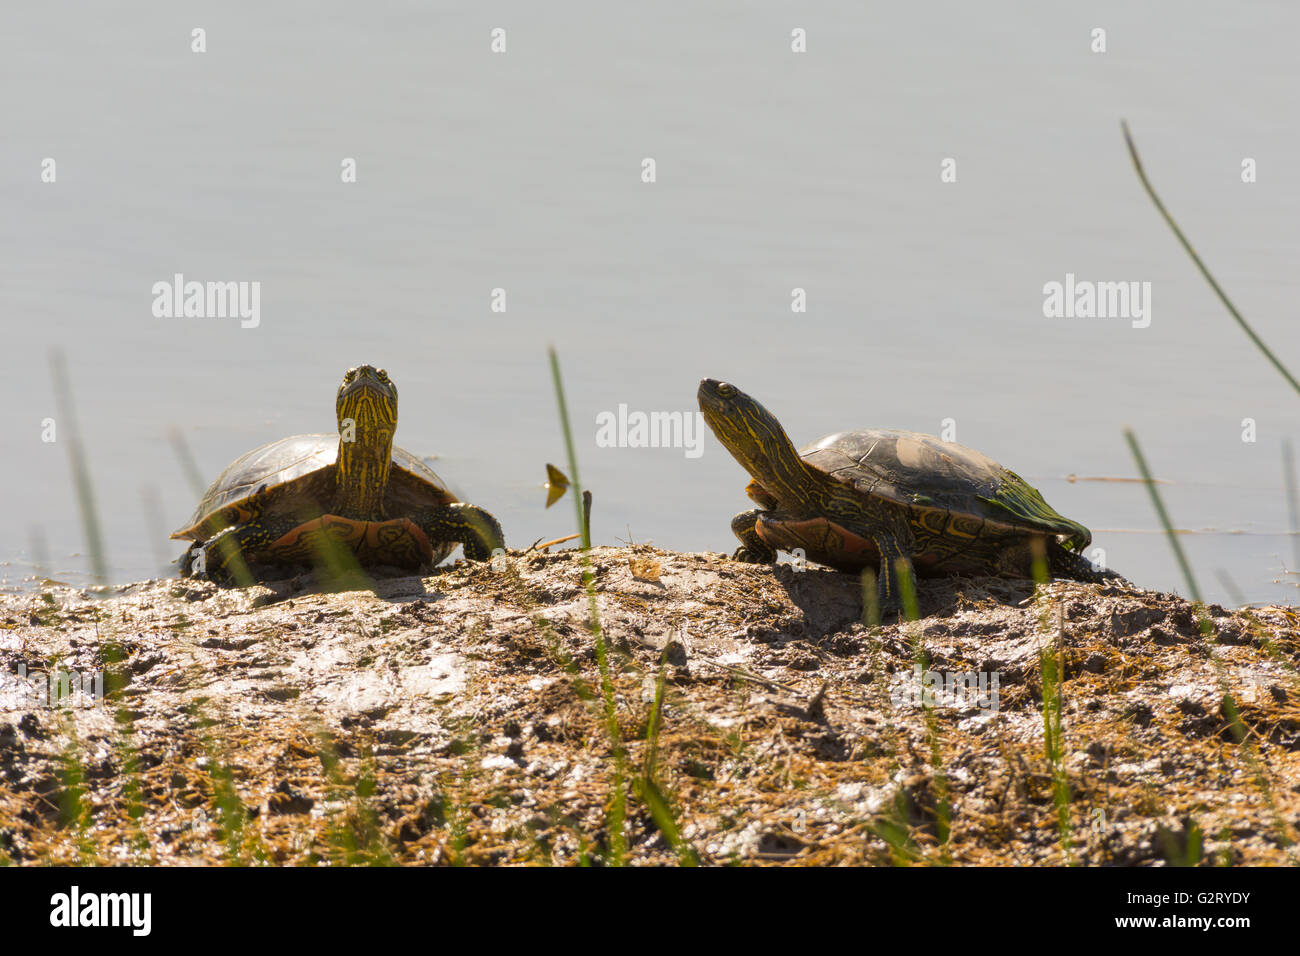 Western Painted Turtles, (Chrysemmys picta bellii), basking at Bosque del Apache National Wildlife Refuge, New Mexico, - Stock Image